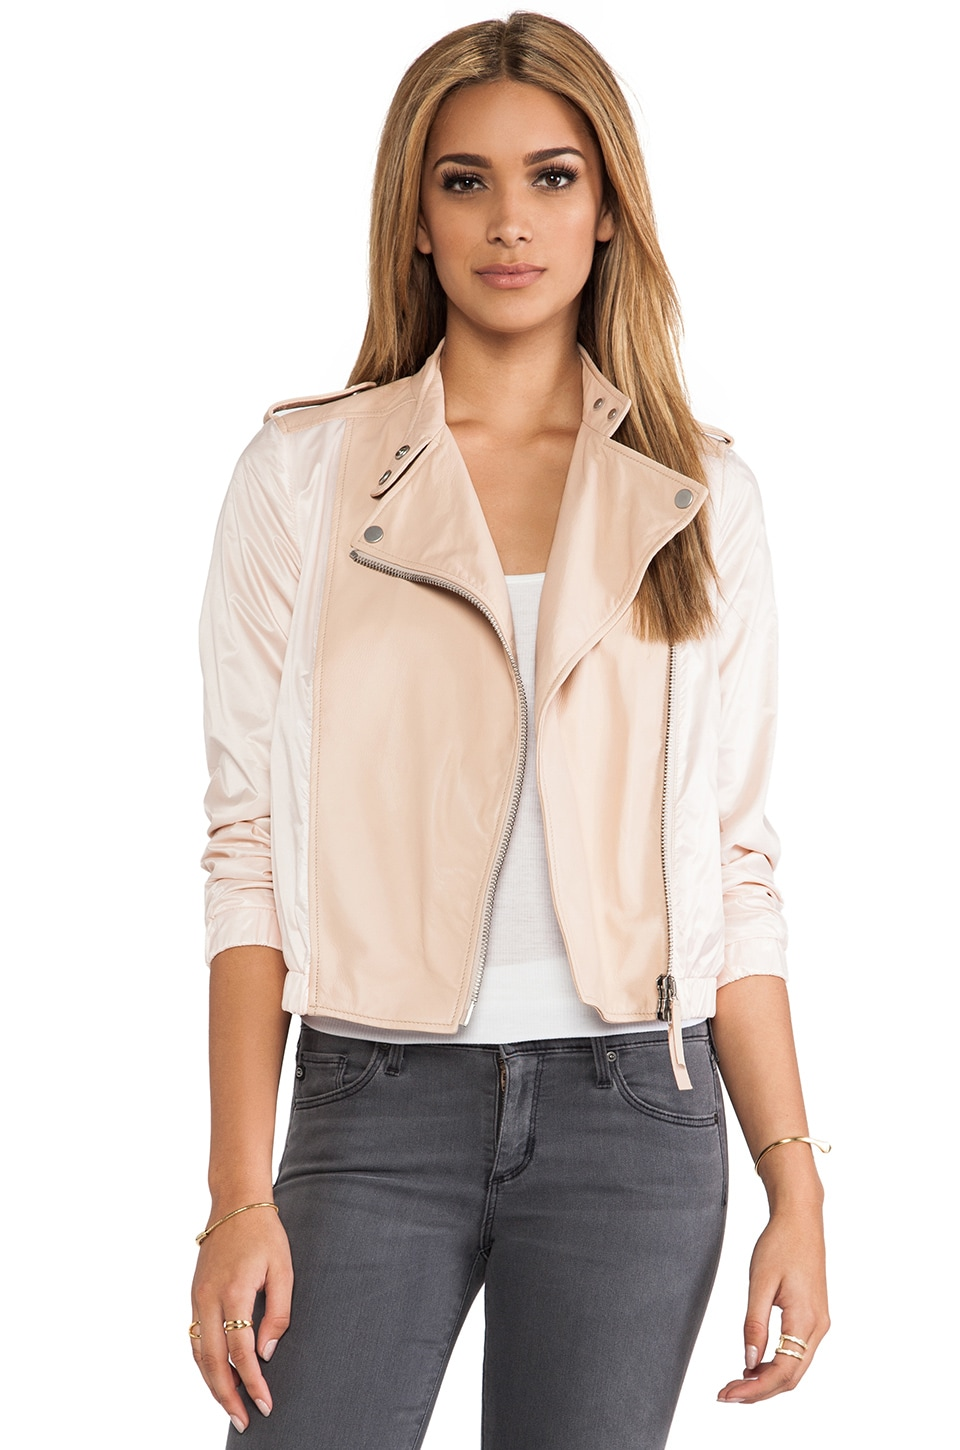 BROGDEN Leather Moto Jacket in Powder